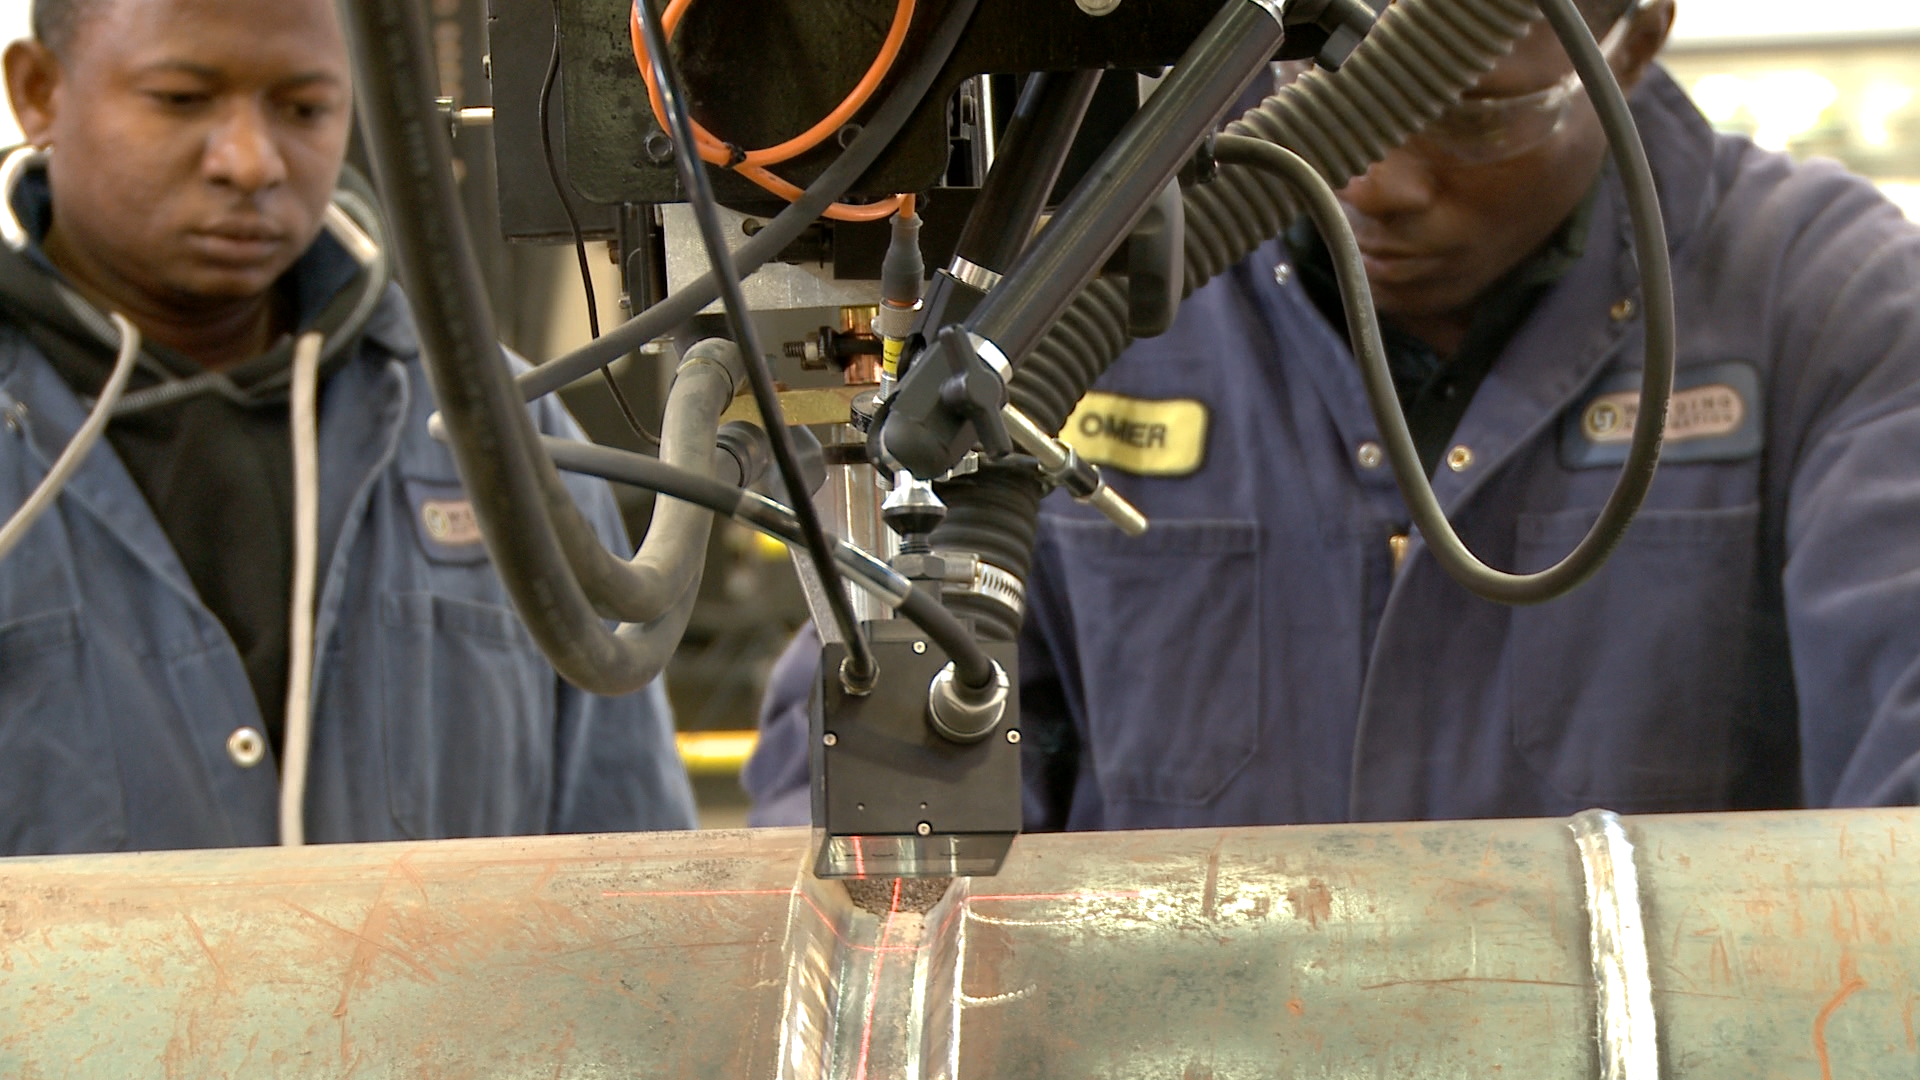 laser seam tracking on a subarc welding manipulator.